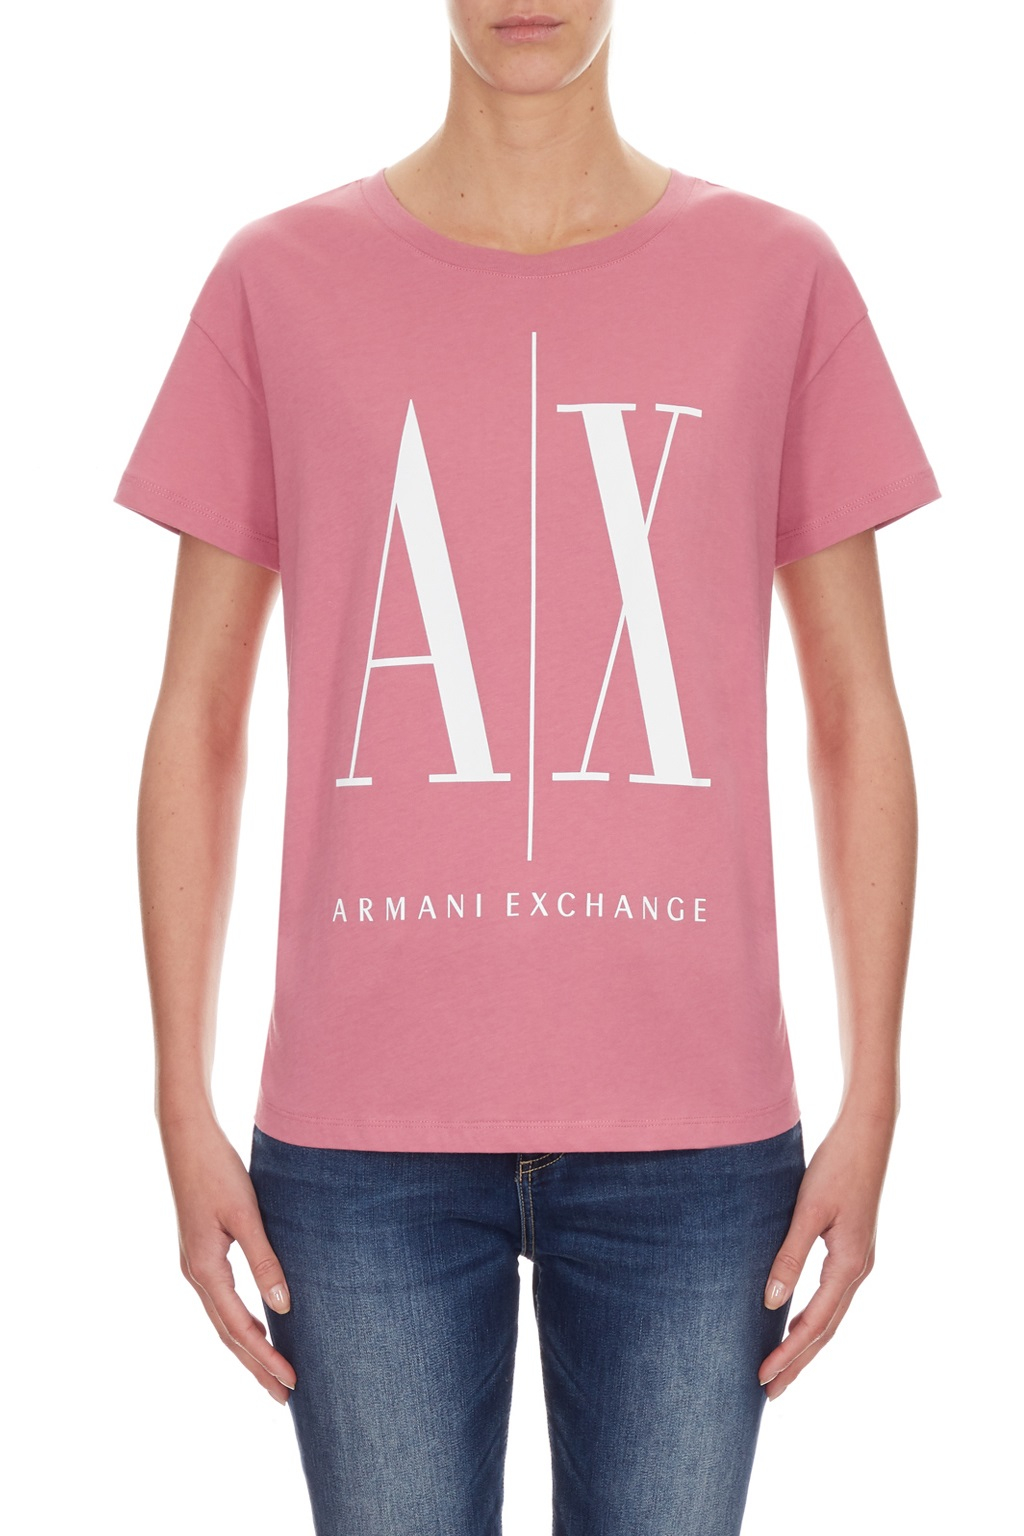 T-shirt manica corta donna ARMANI EXCHANGE icon A/X